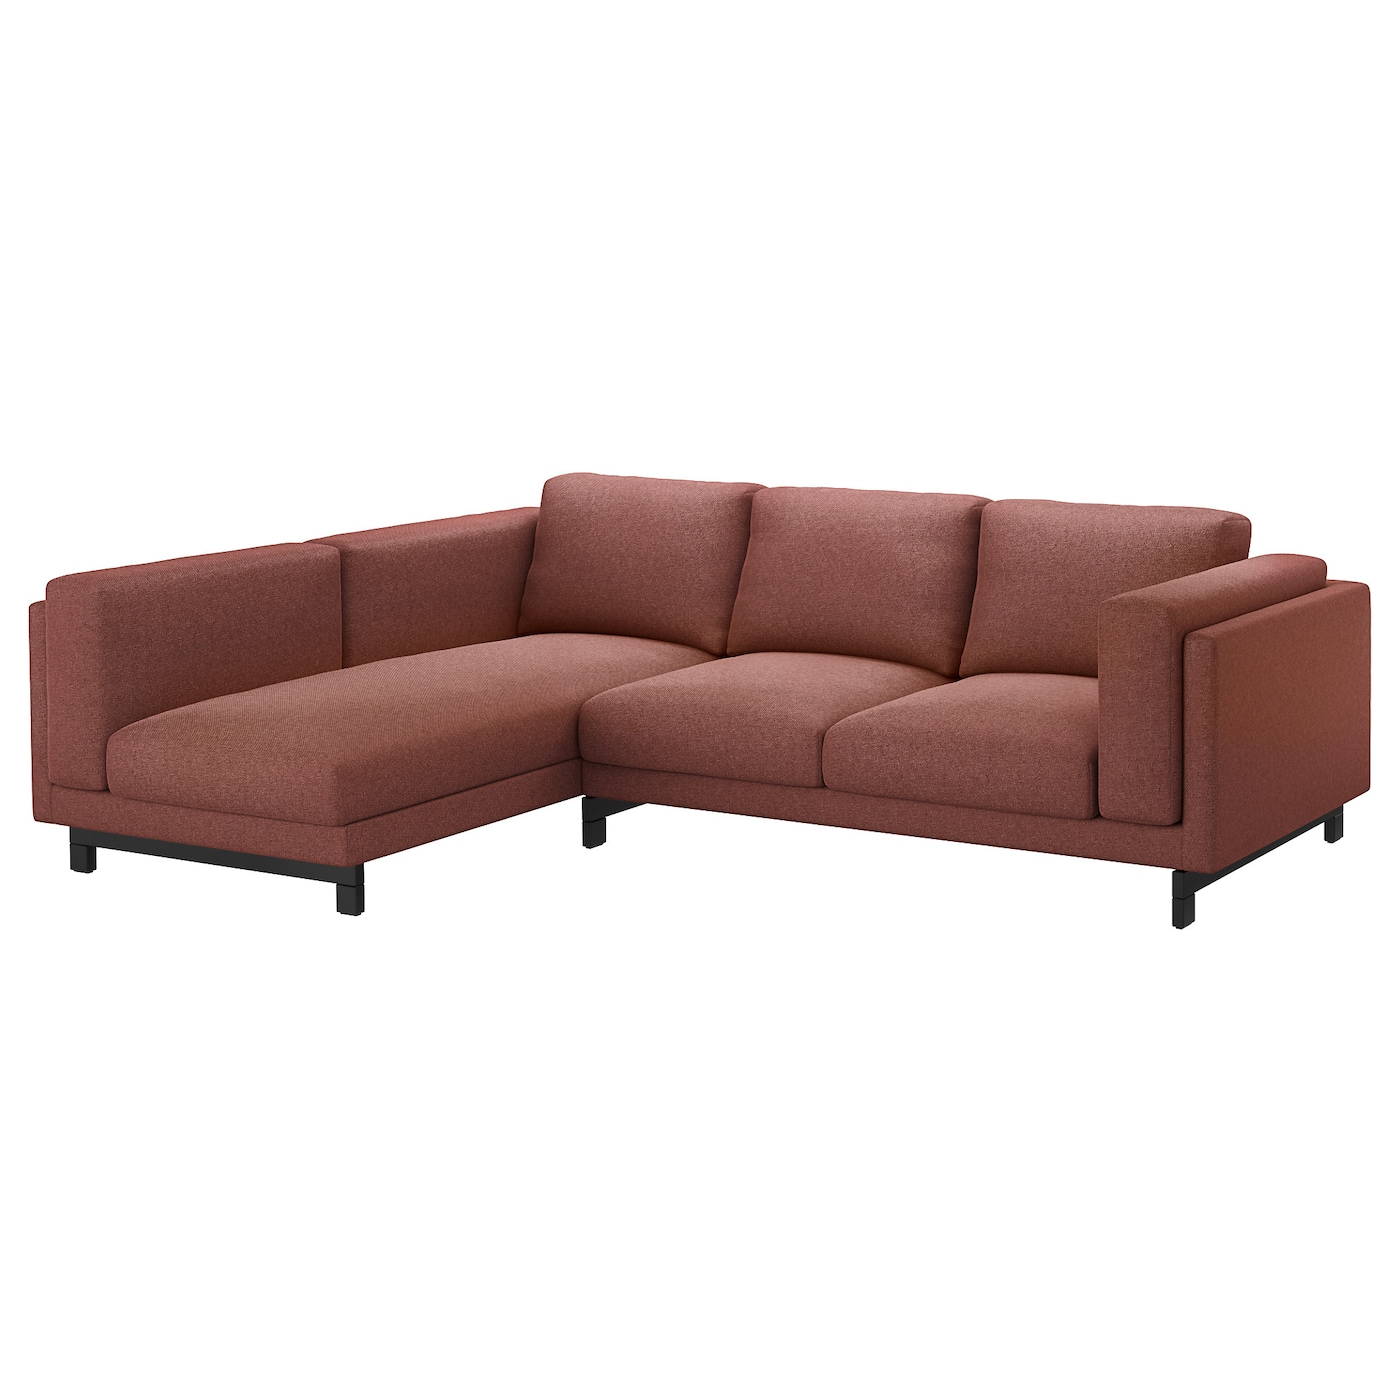 Nockeby two seat sofa w chaise longue left tallmyra rust for Sofa jugendzimmer ikea